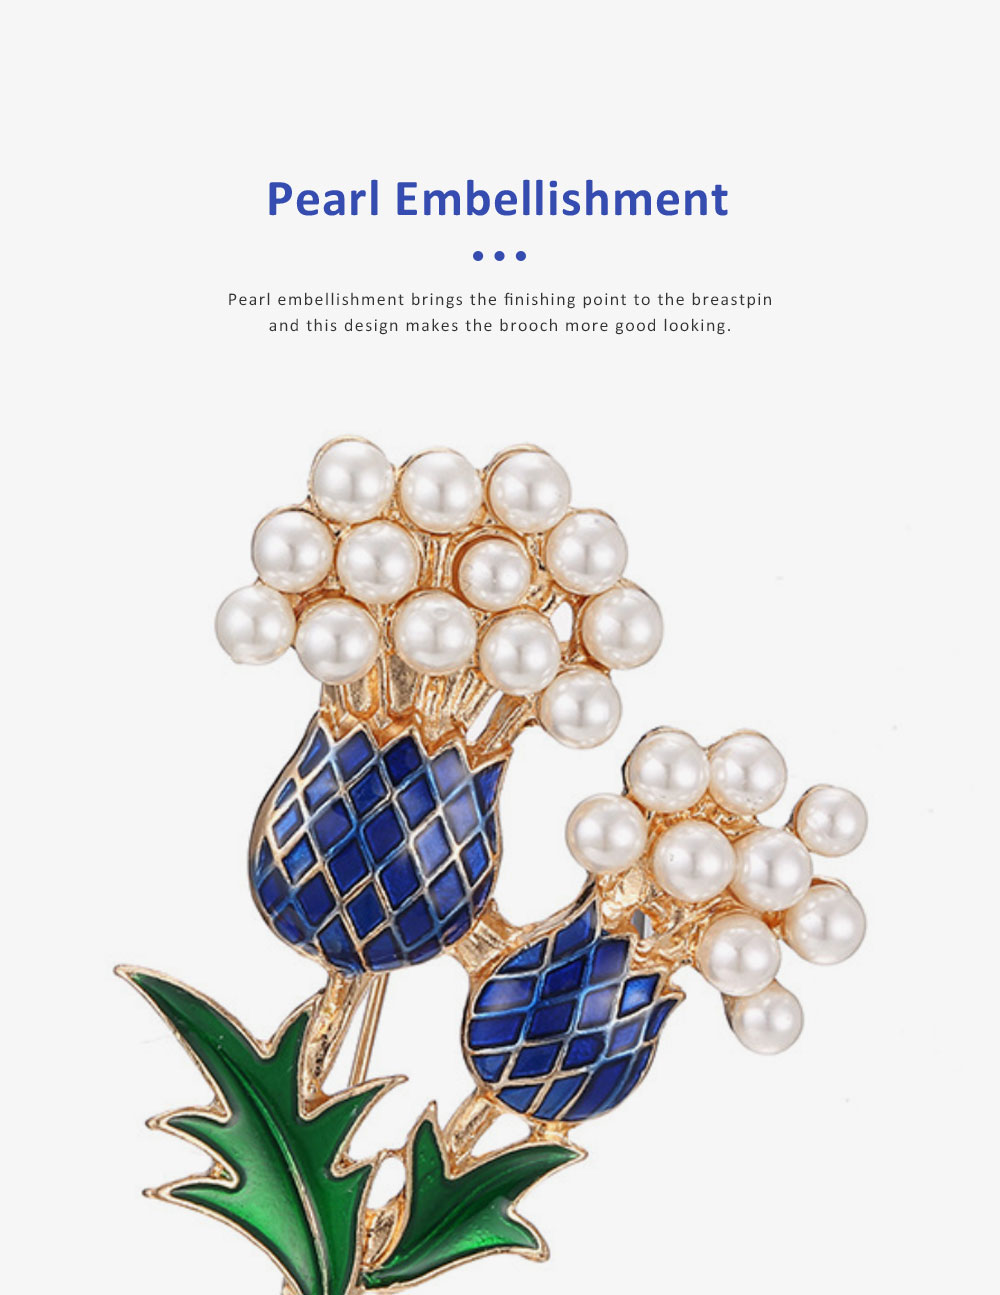 Elegant Brooch Oil-spot Glaze Pearl Decoration Pineapple Tree Breastpin, Delicate Fine Shiny Durable Alloy Brooch Clothes Scarf Ornament 4